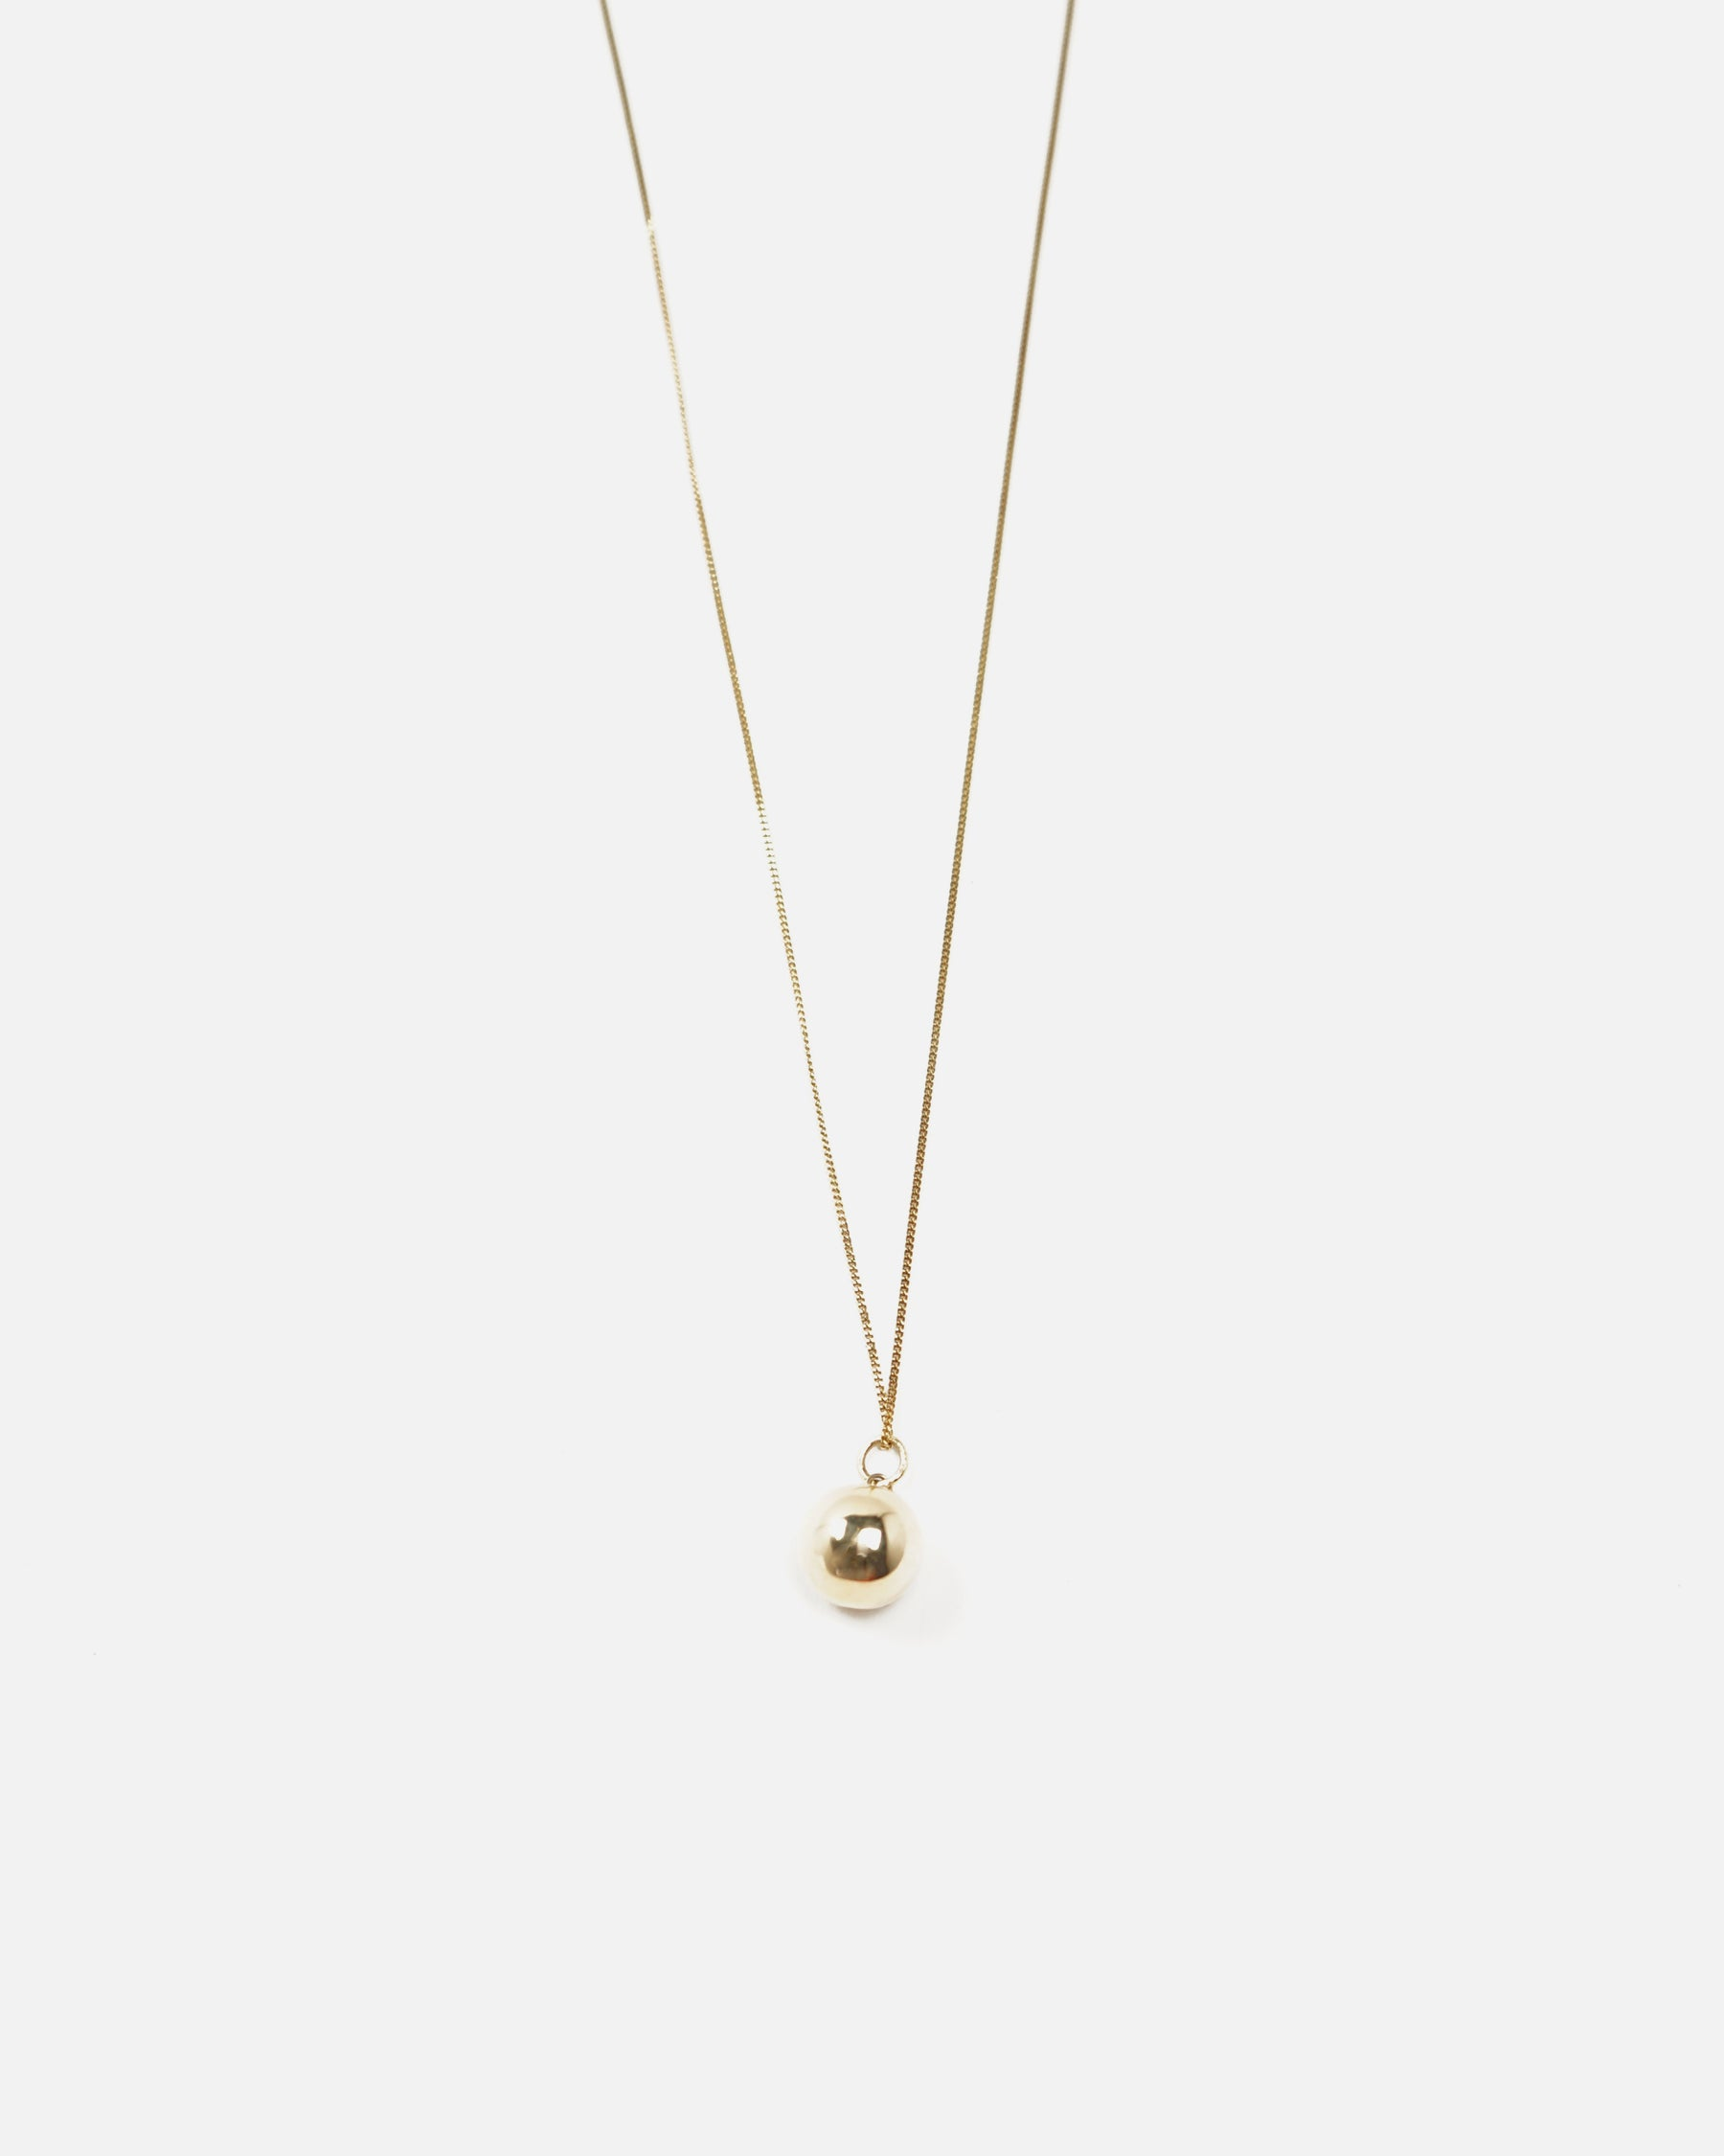 14K Gold Ball Charm Necklace